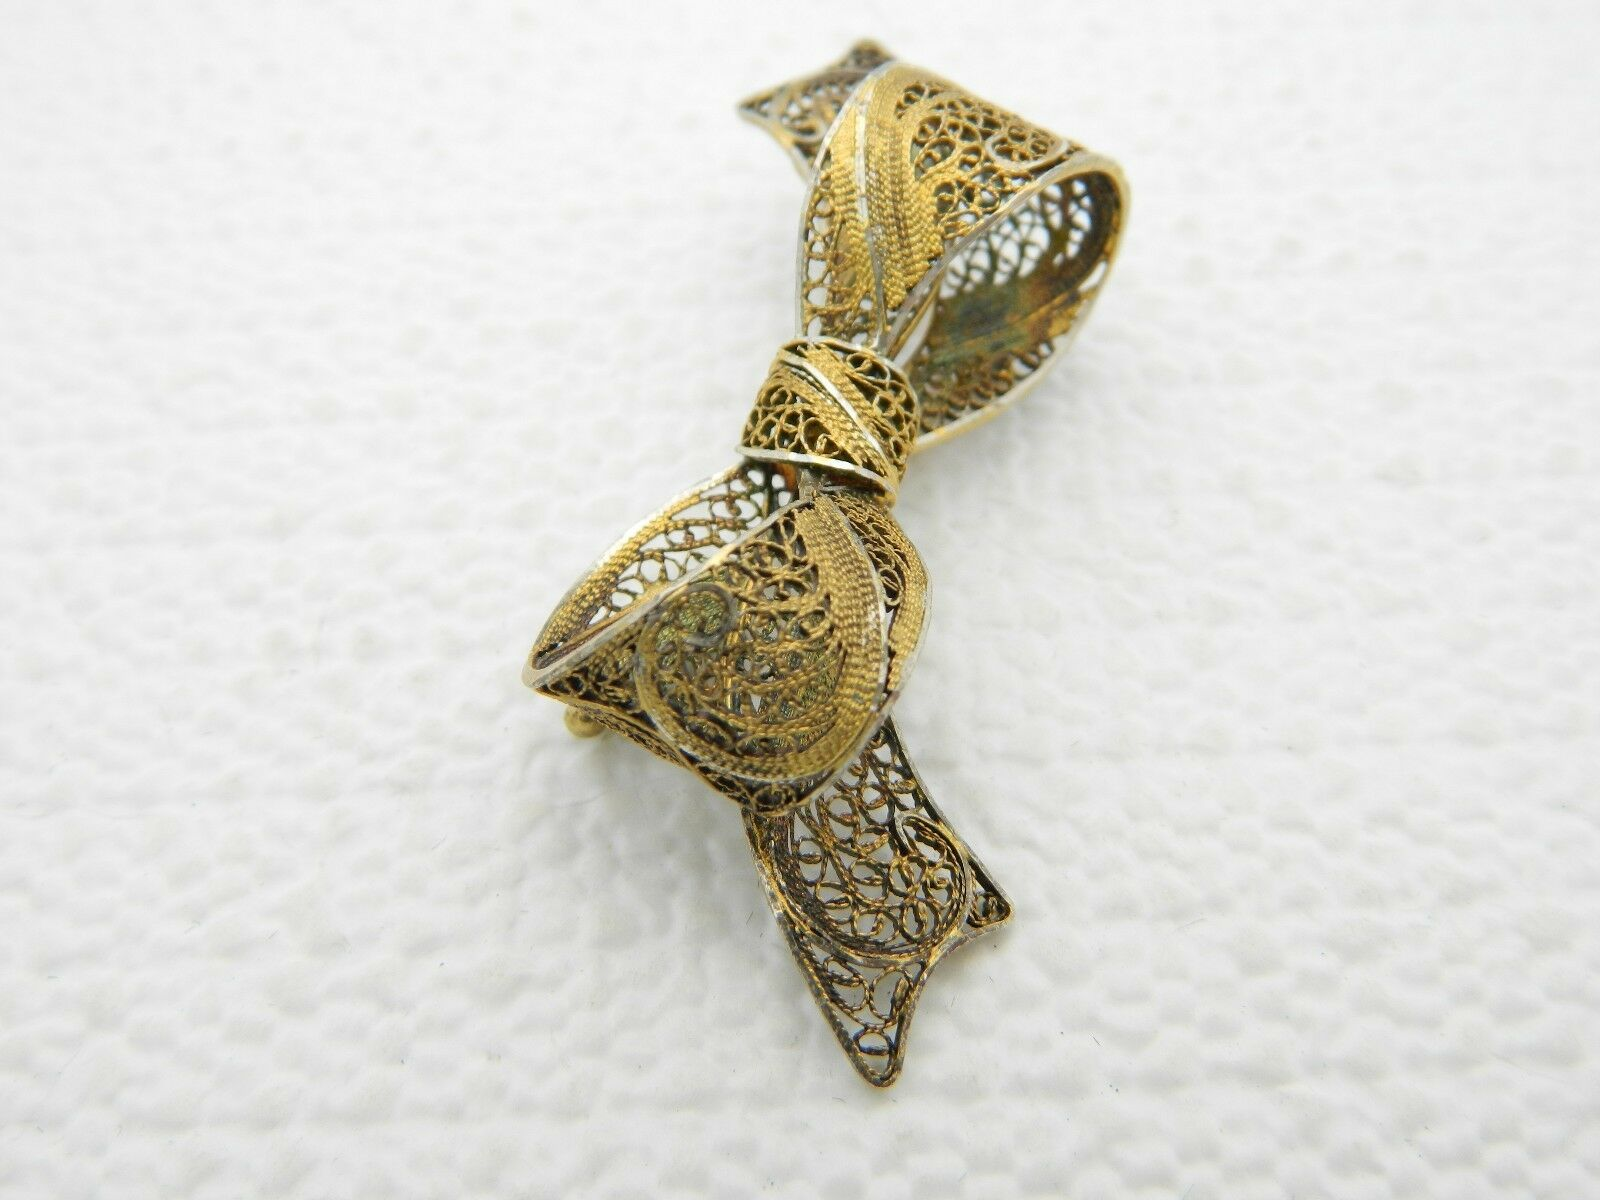 Vintage SAFIR Portugal Signed Gold Tone Guilloche Bow Pin Brooch